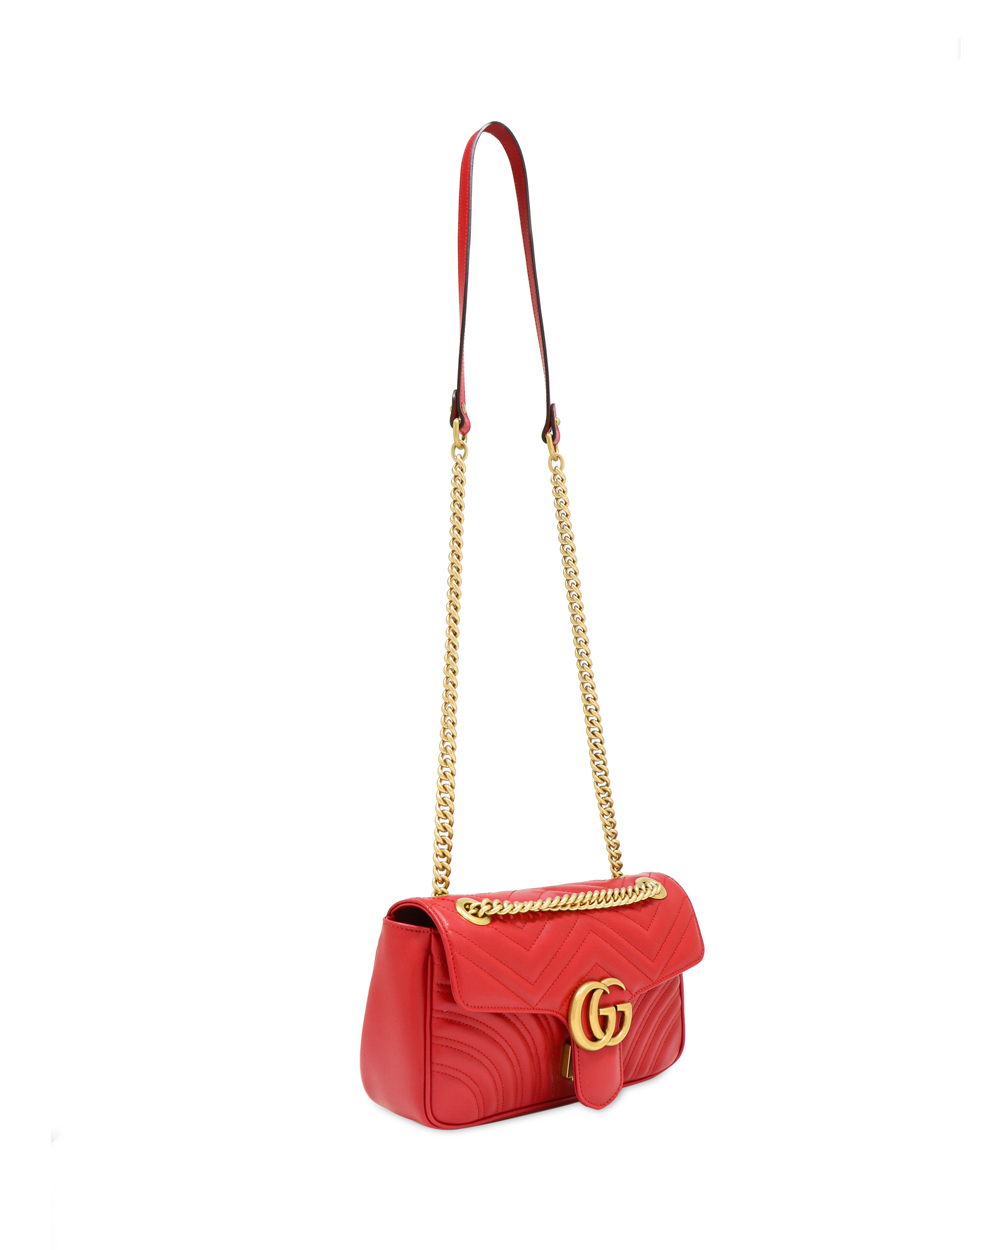 GG MARMONT Small Leather Shoulder Bag 1